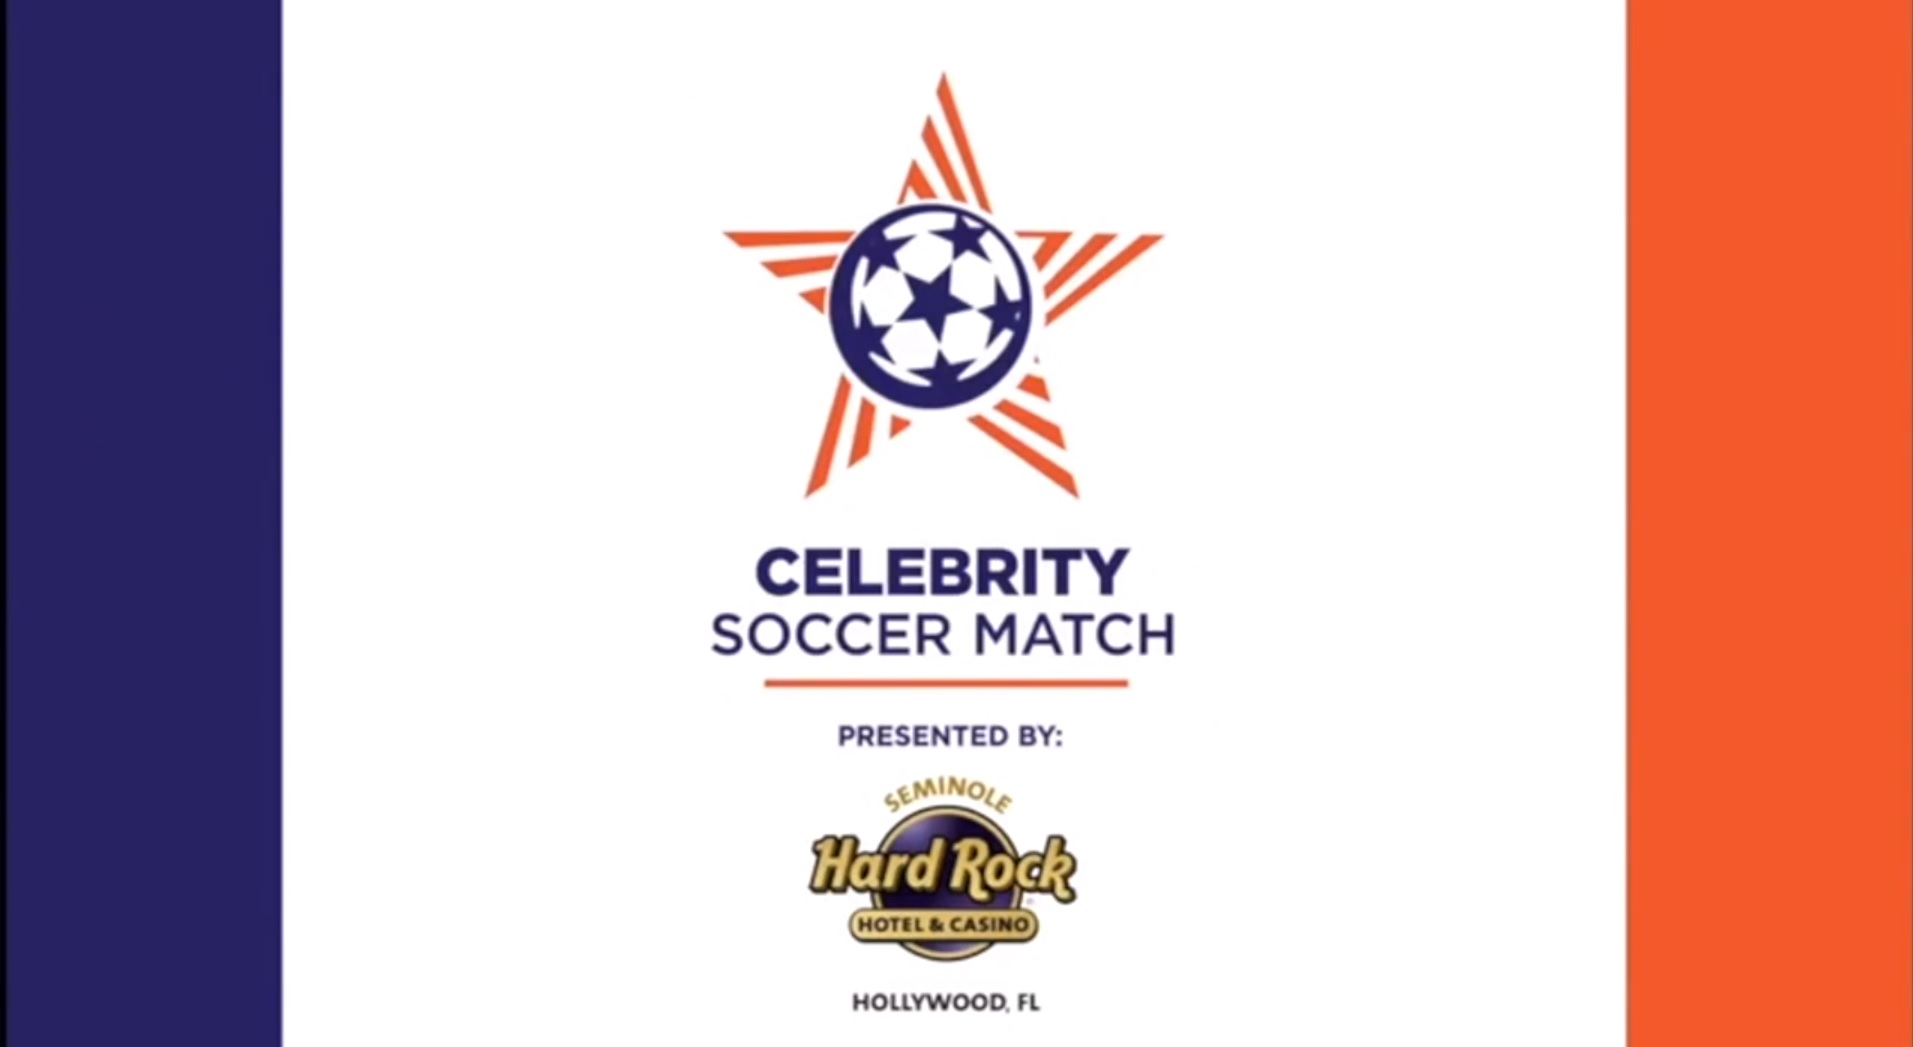 Celebrity Soccer Match